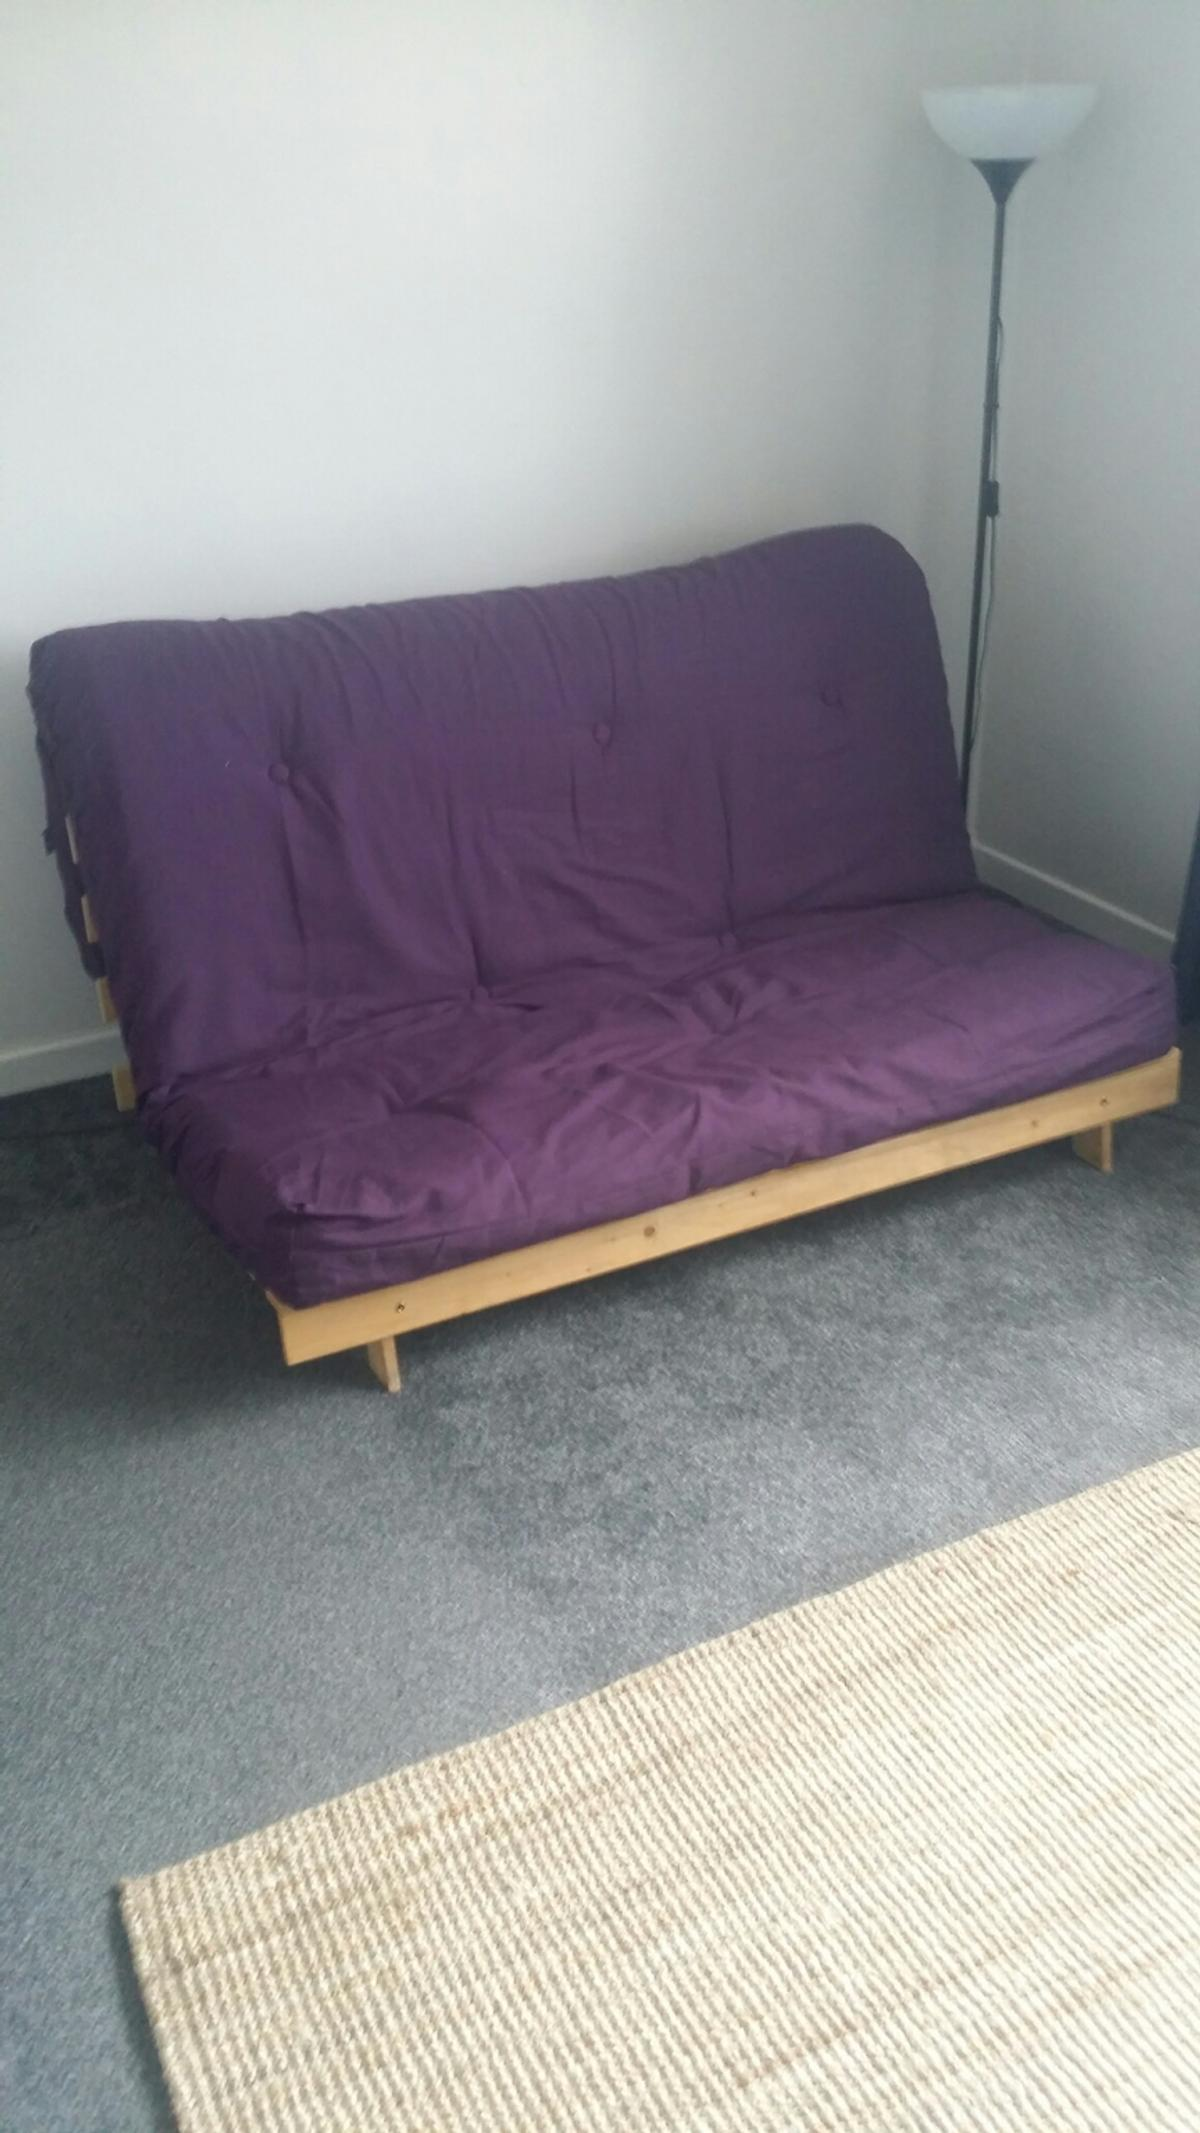 Superb Double Futon Sofa Bed Kyoto In Coventry For 60 00 For Machost Co Dining Chair Design Ideas Machostcouk